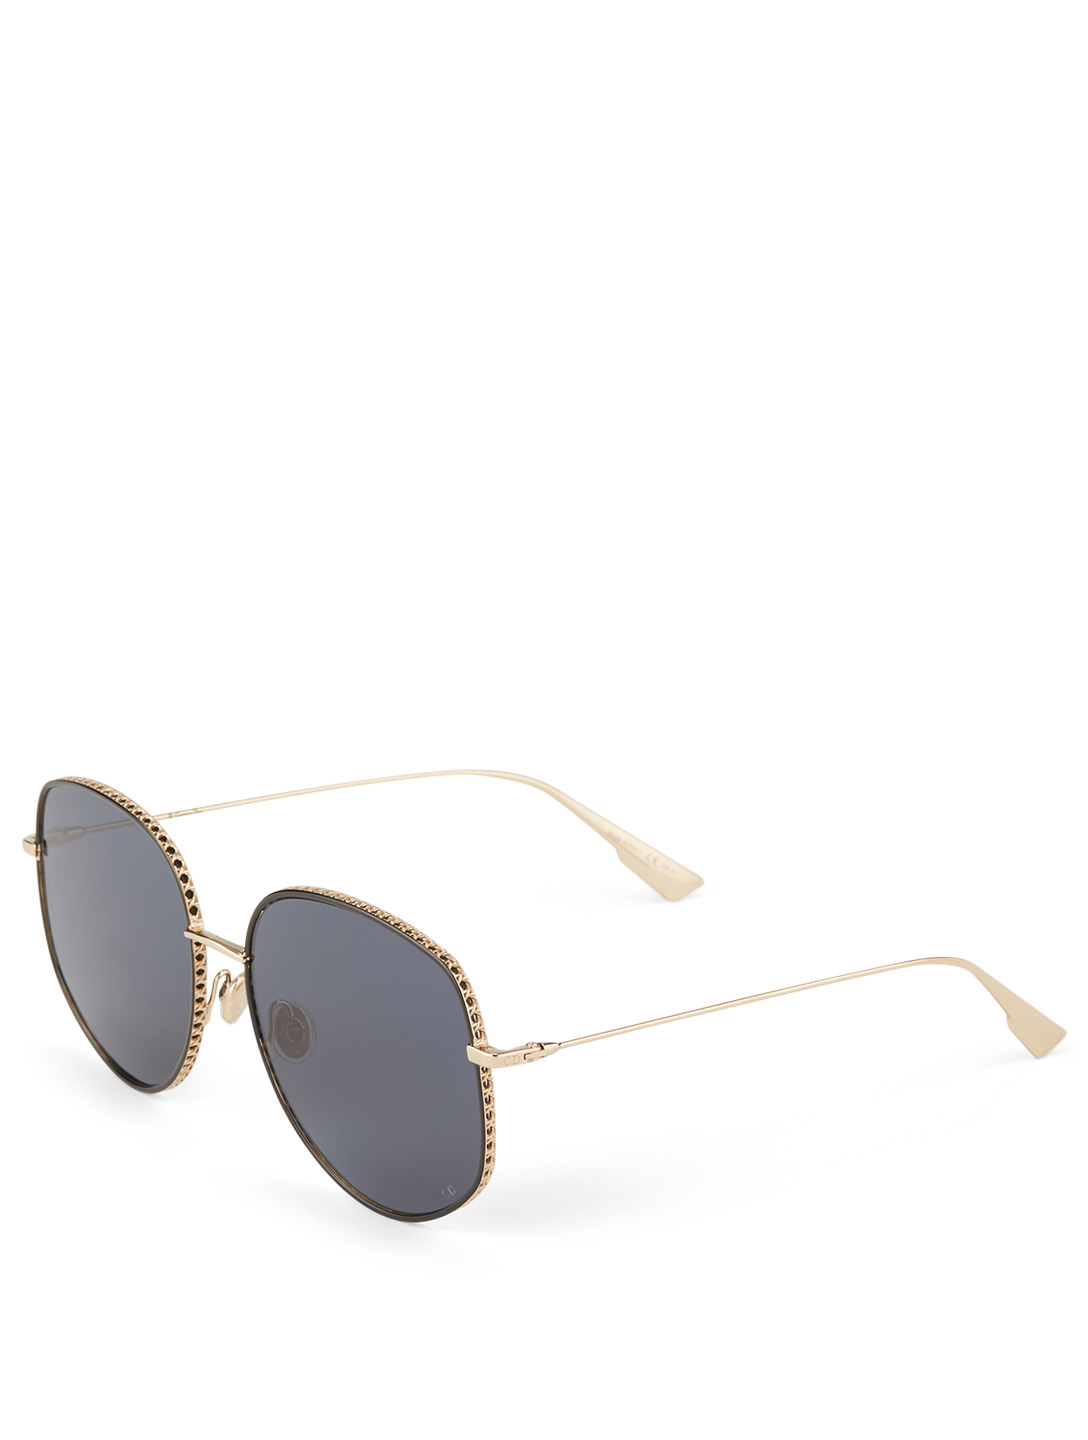 DIOR DiorByDior2 Sunglasses Women's Metallic